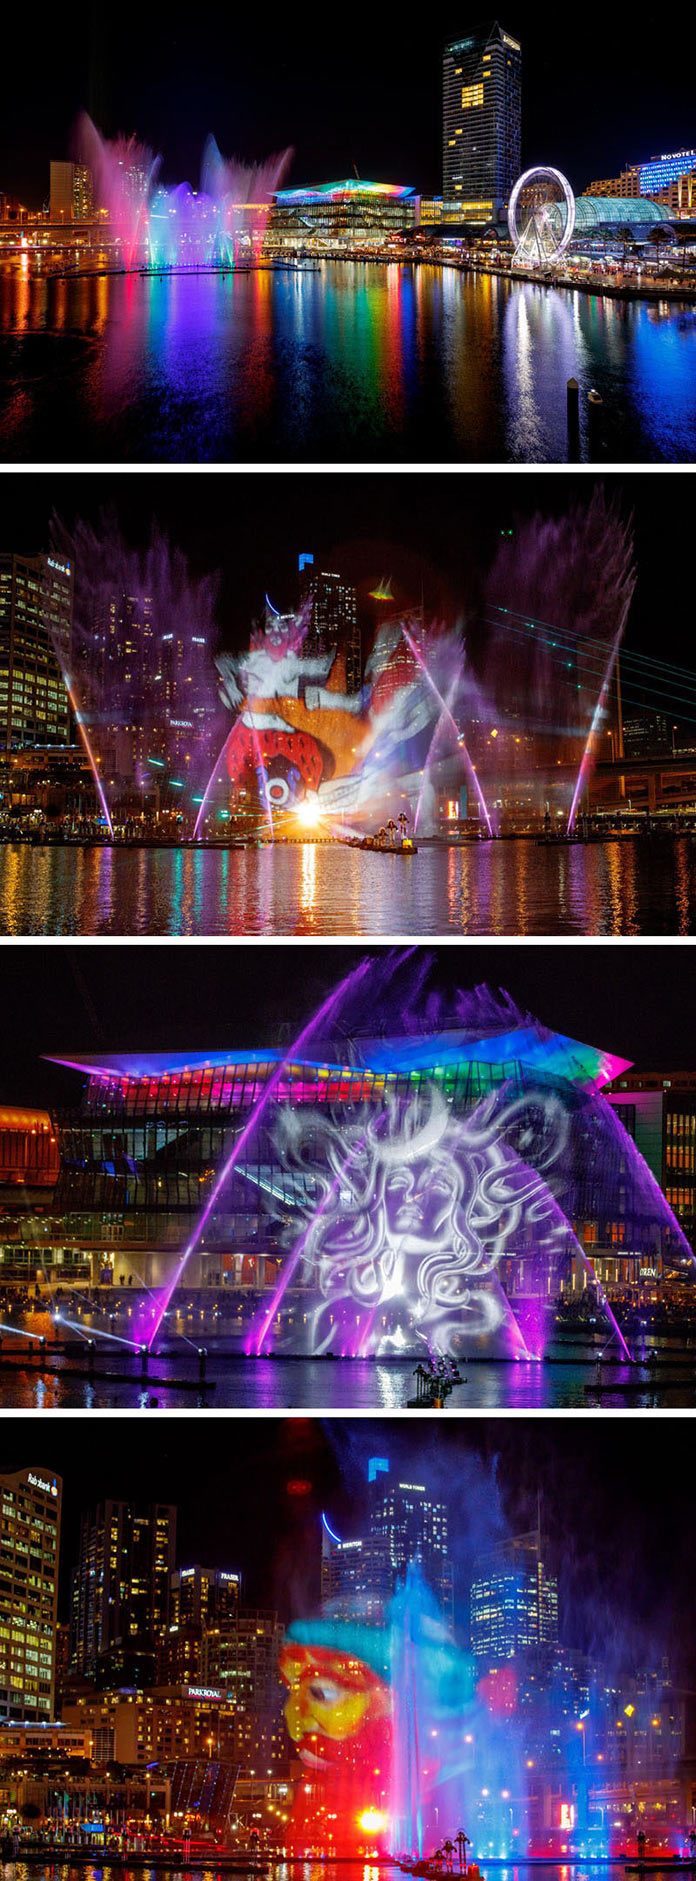 Installations and Projections of the Vivid Sydney Light Festival 2017